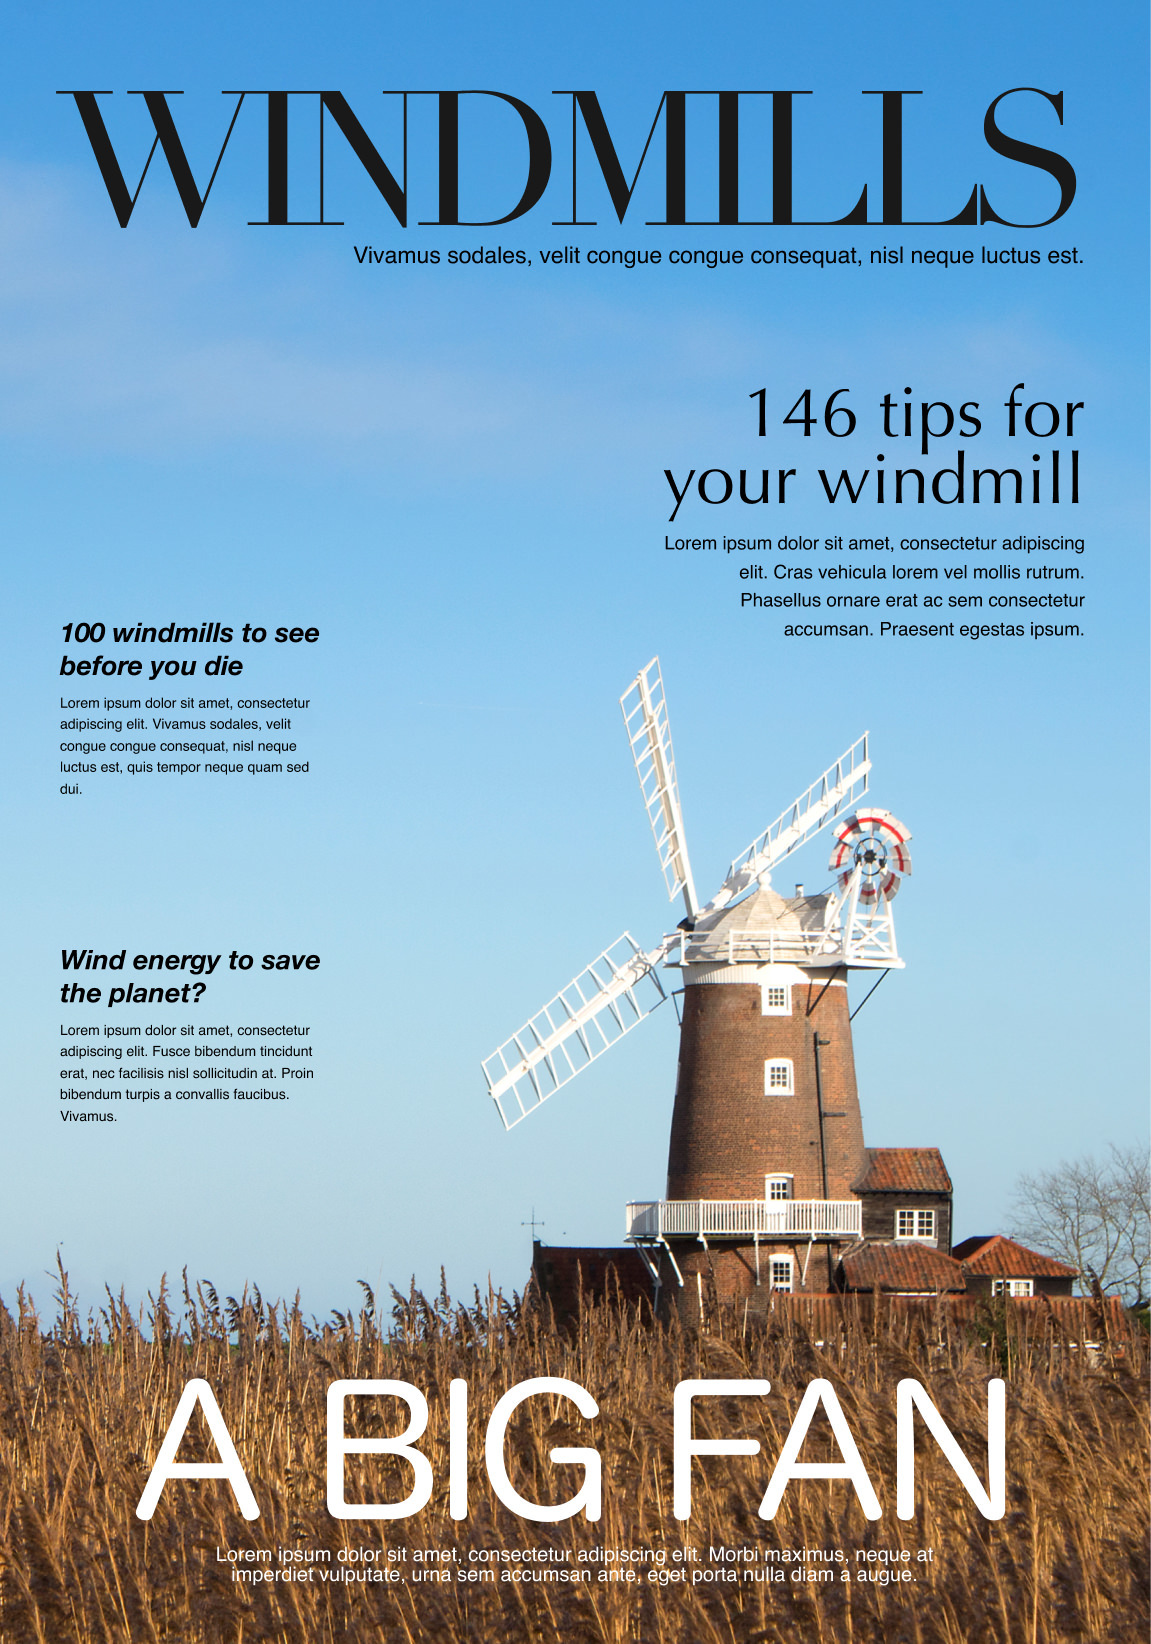 Mock up of a magazine cover featuring the image of a windmill